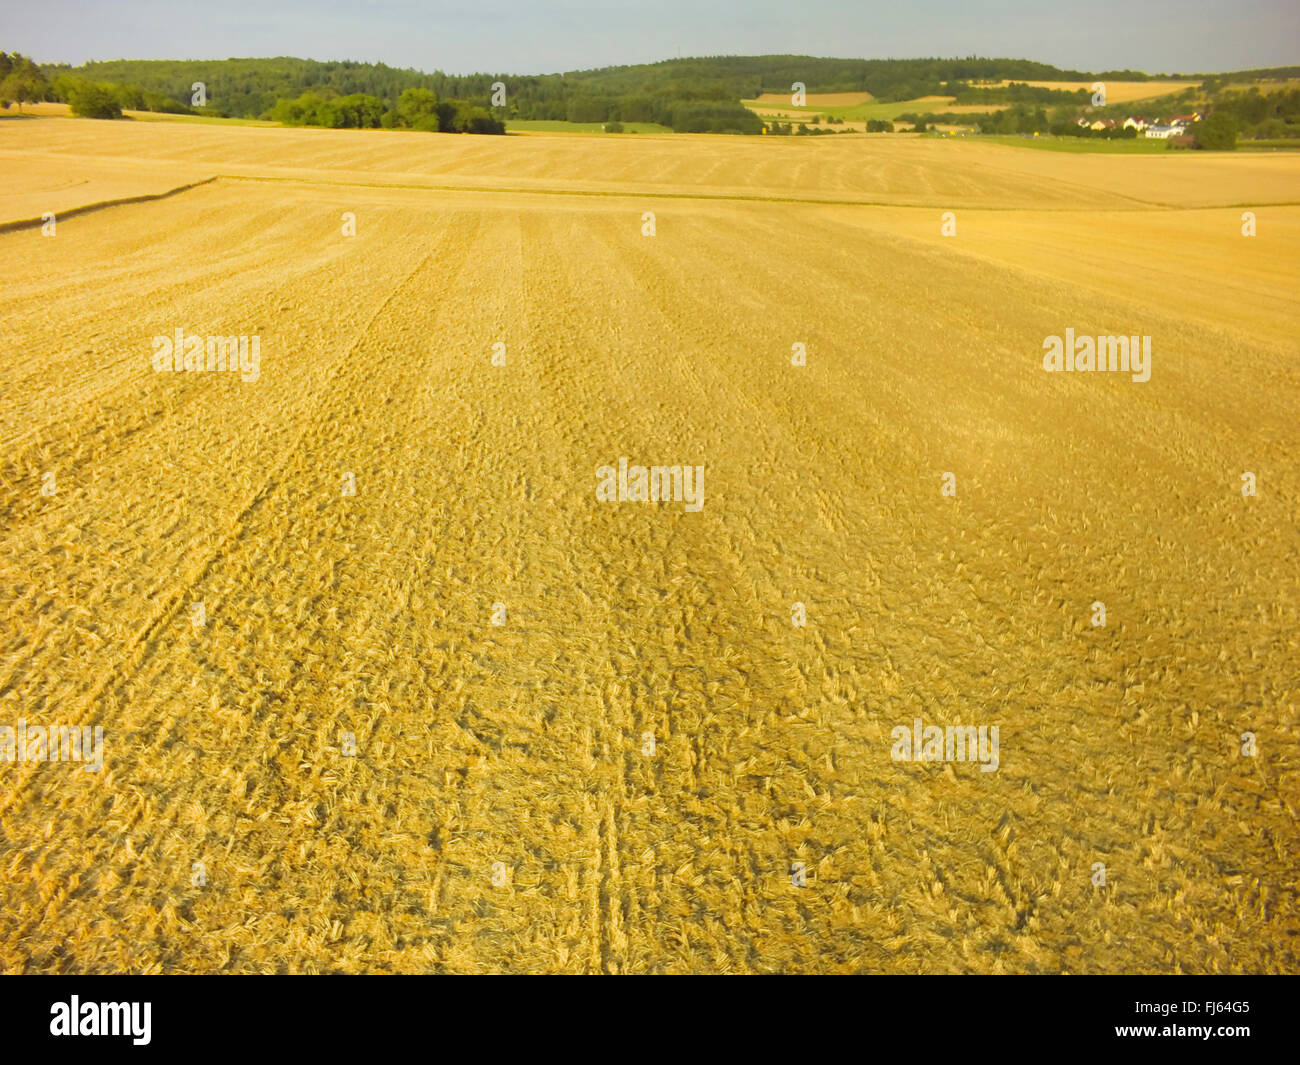 harvested wheat field, air photo, 23.07.2015, aerial view , Germany, Baden-Wuerttemberg, Odenwald - Stock Image